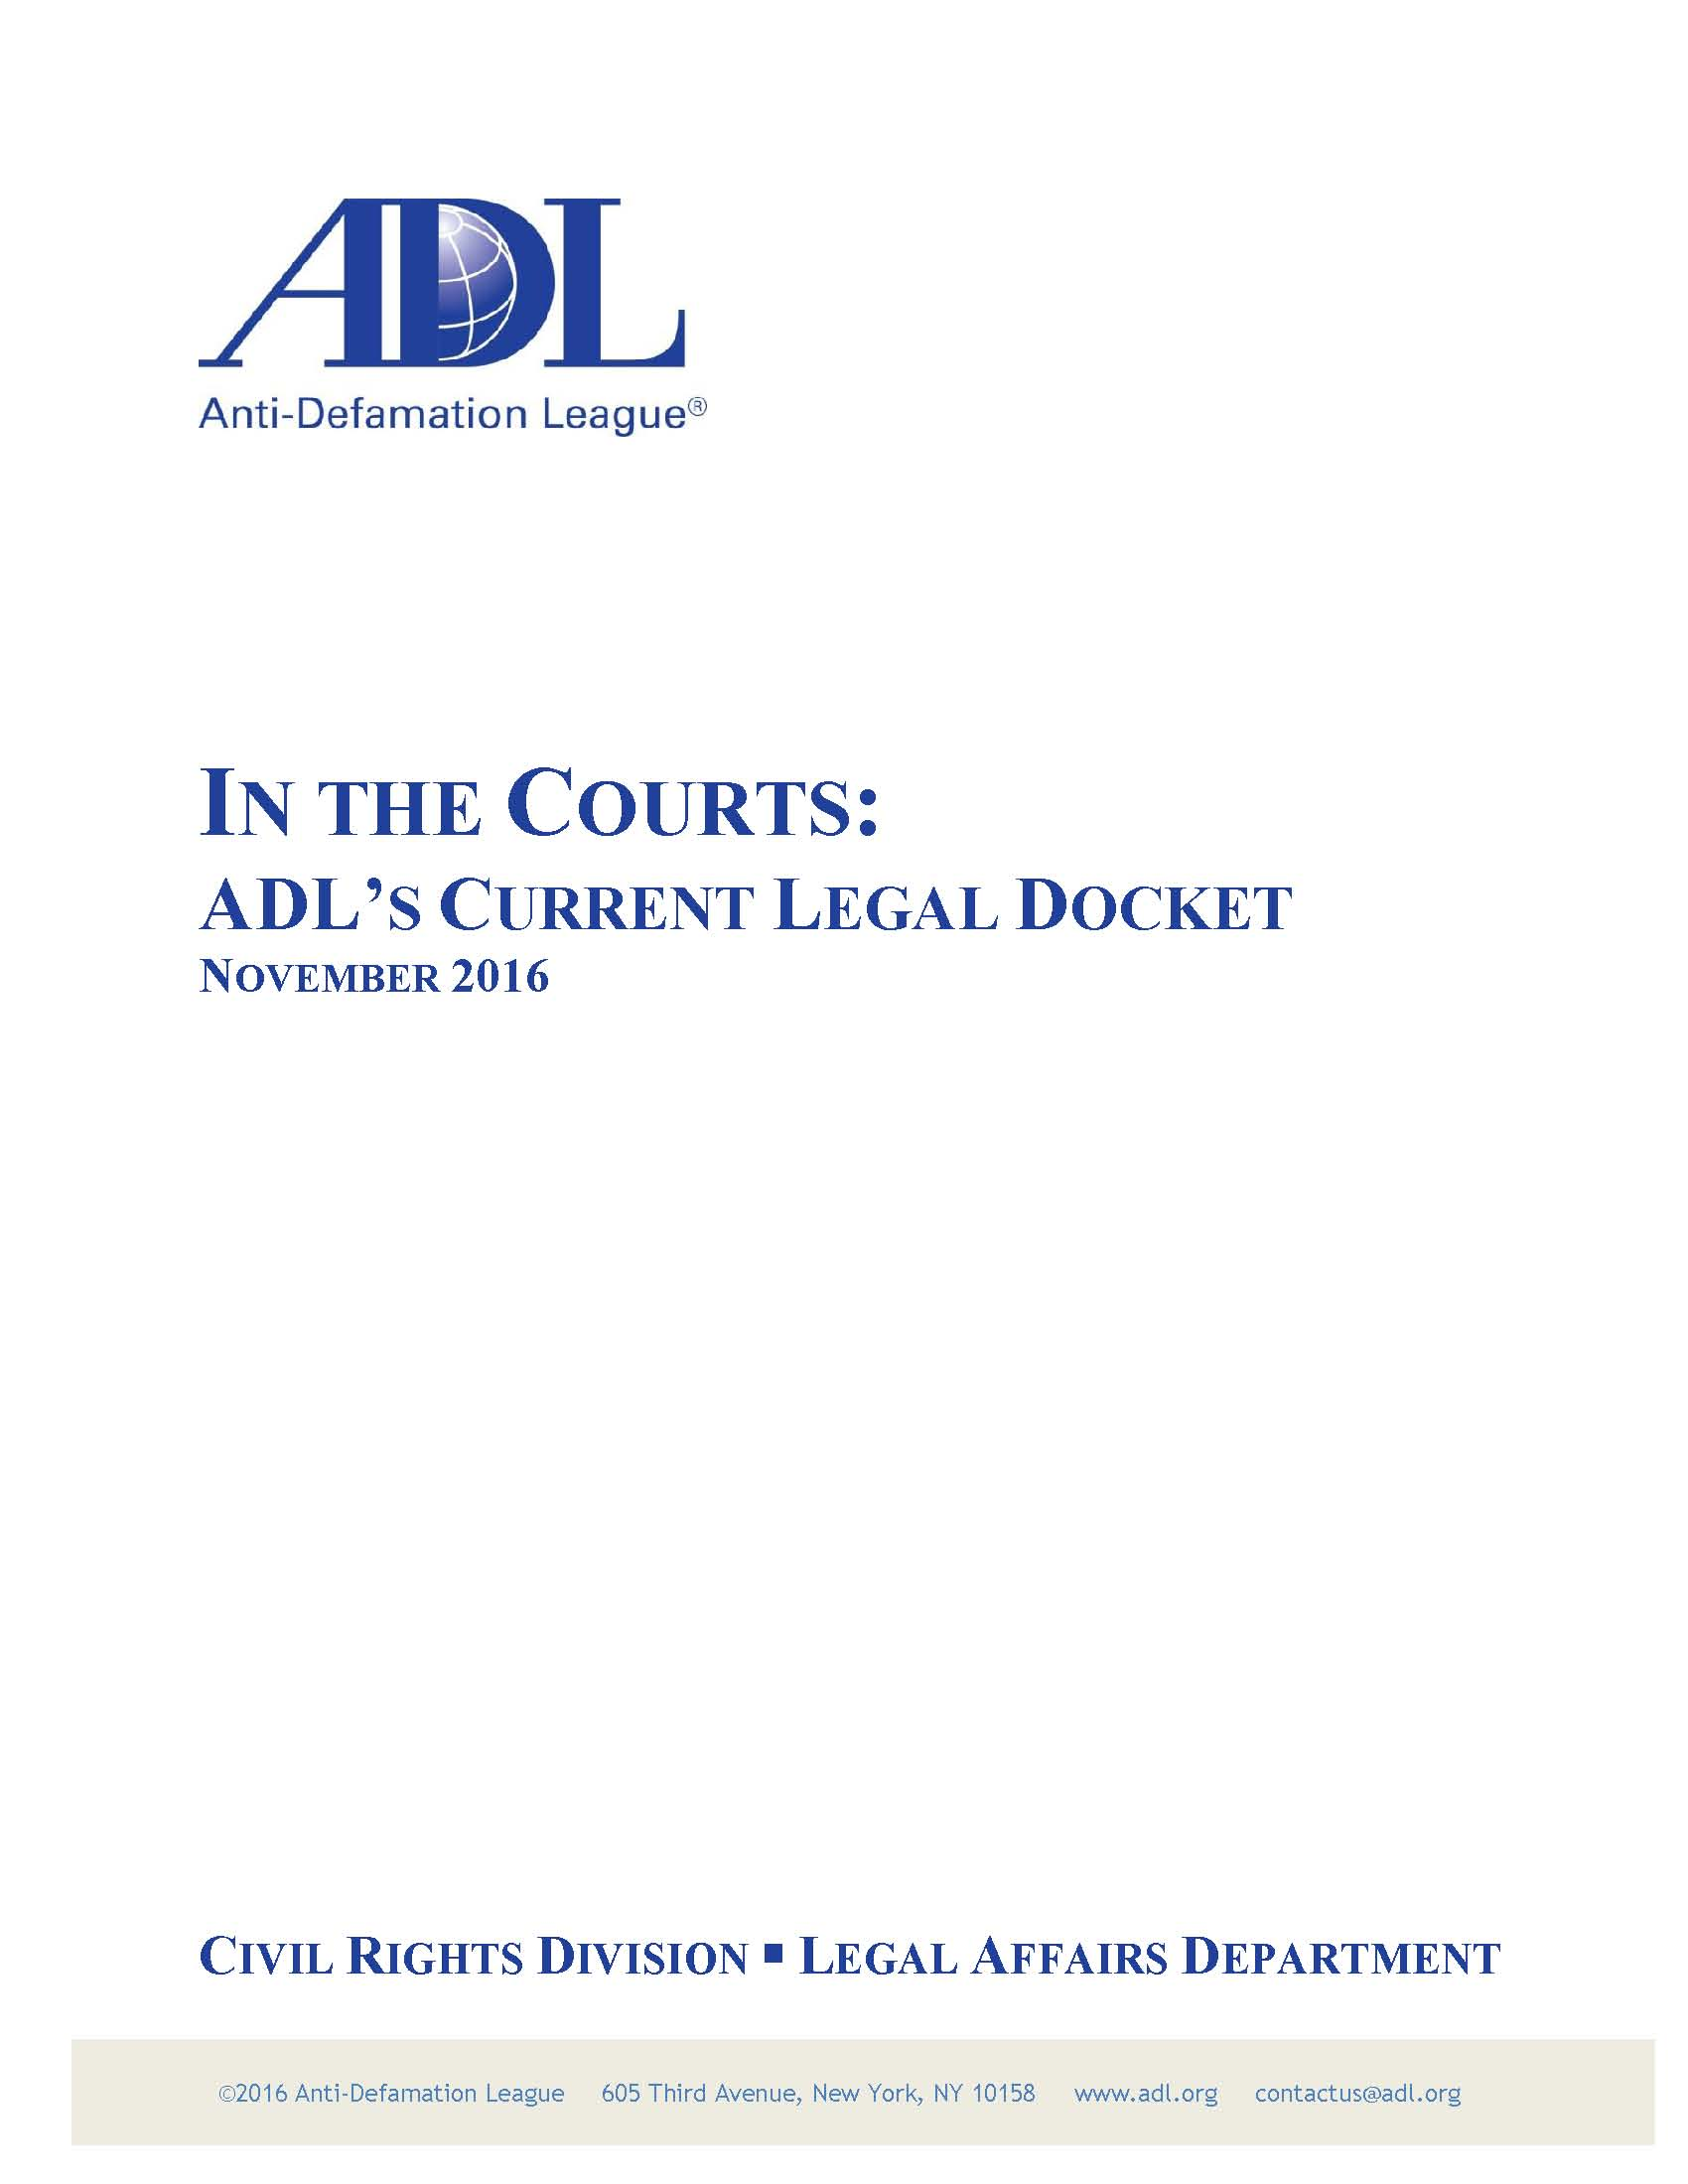 ADL in the Courts: November 2016_THUMBNAIL